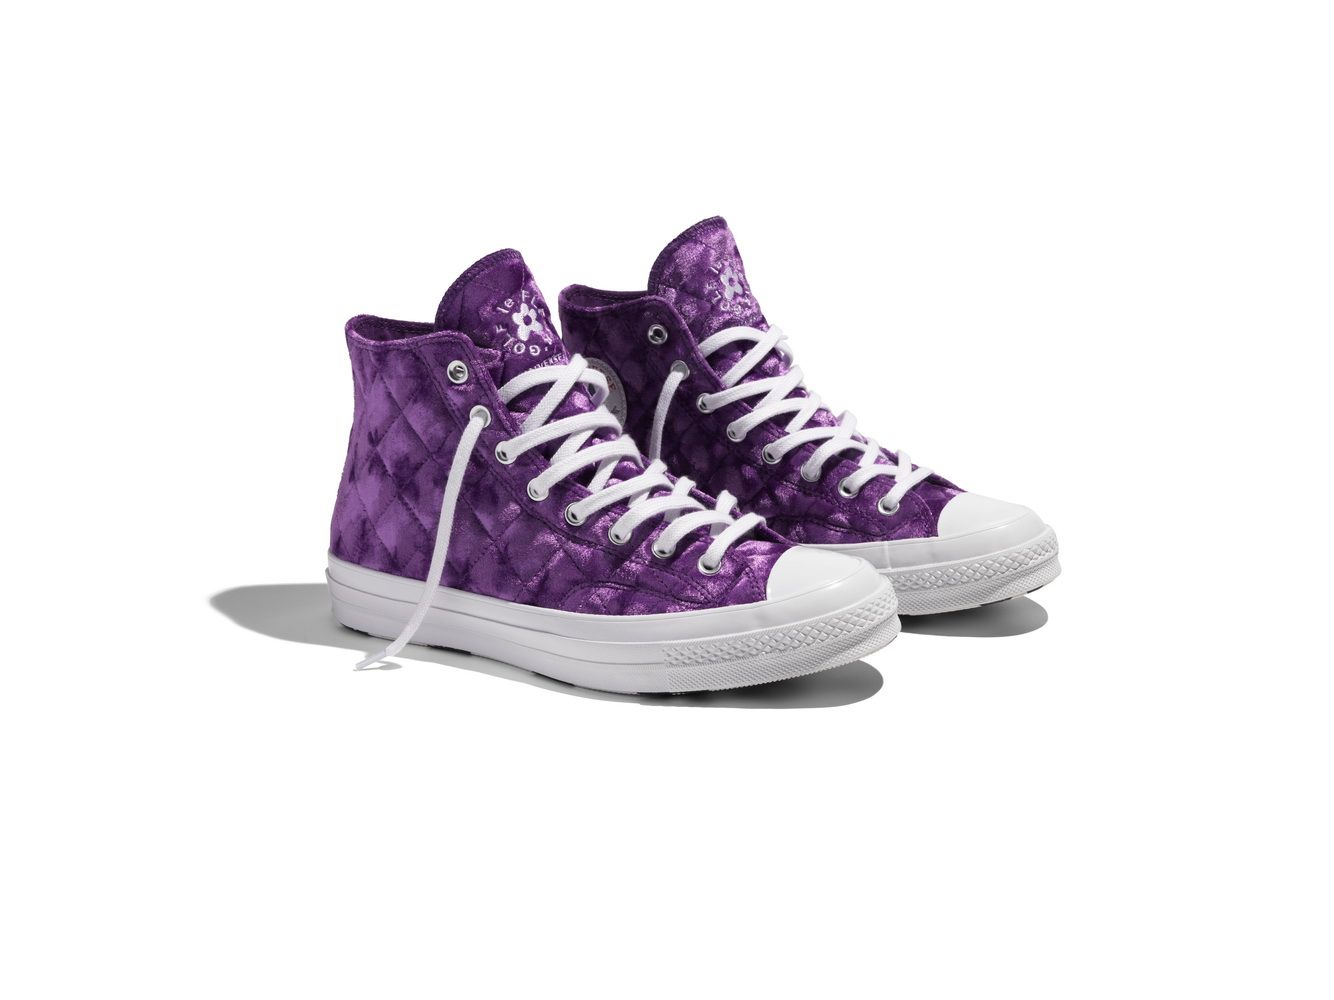 SU19_Golf_Le_Fleur_Quilted_Purple_Pair_resize